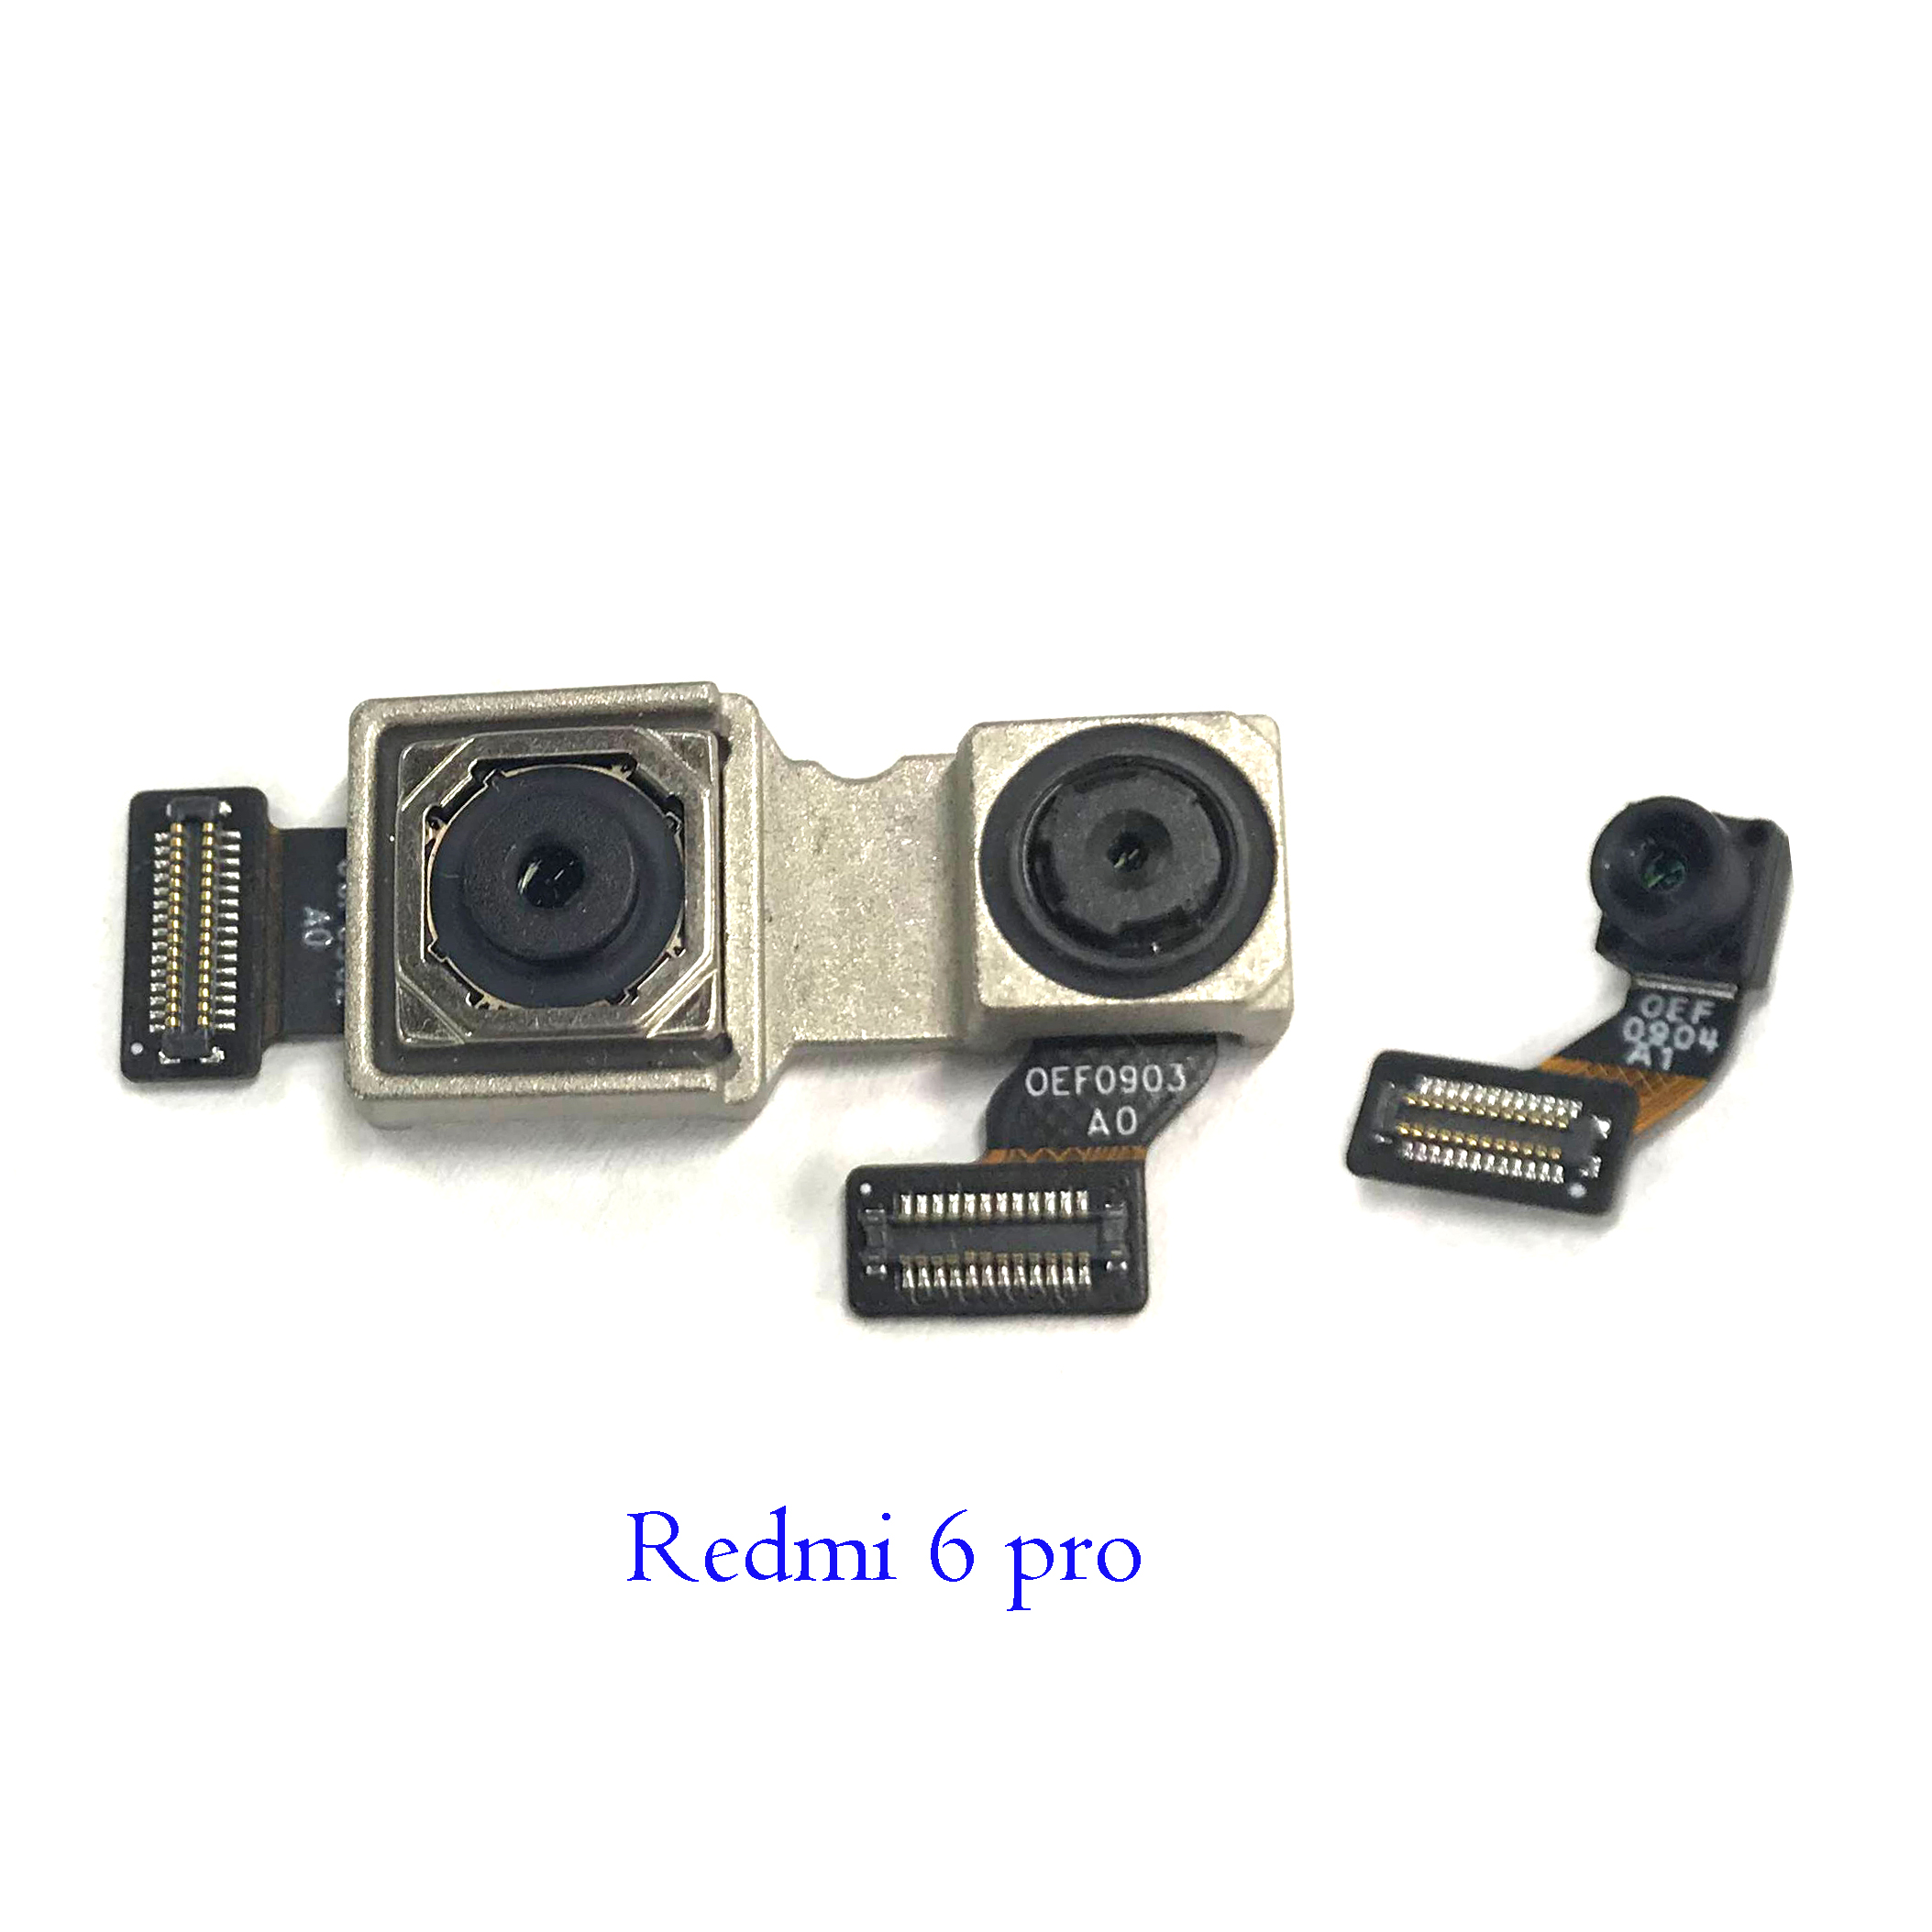 New Original Front Facing Camera Rear Back Main Camera For Xiaomi Redmi 6 Pro/Mi A2 Lite